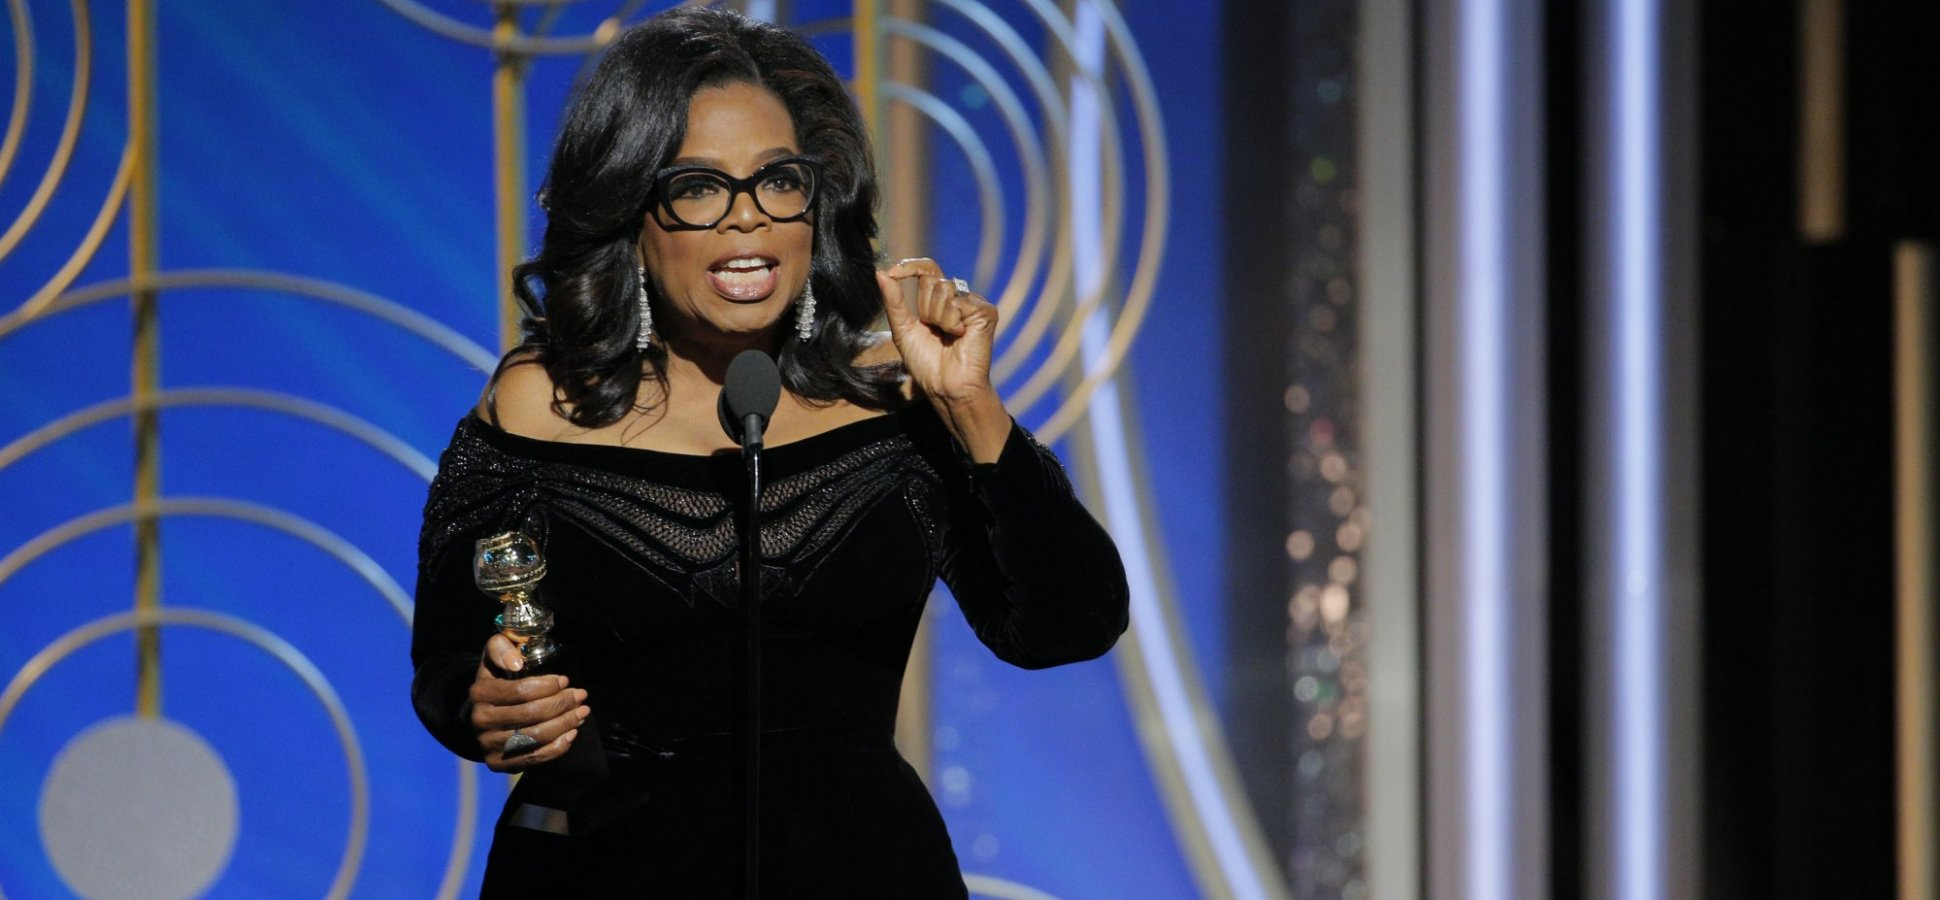 According to Oprah, All Your Arguments Come Down to These 3 Questions